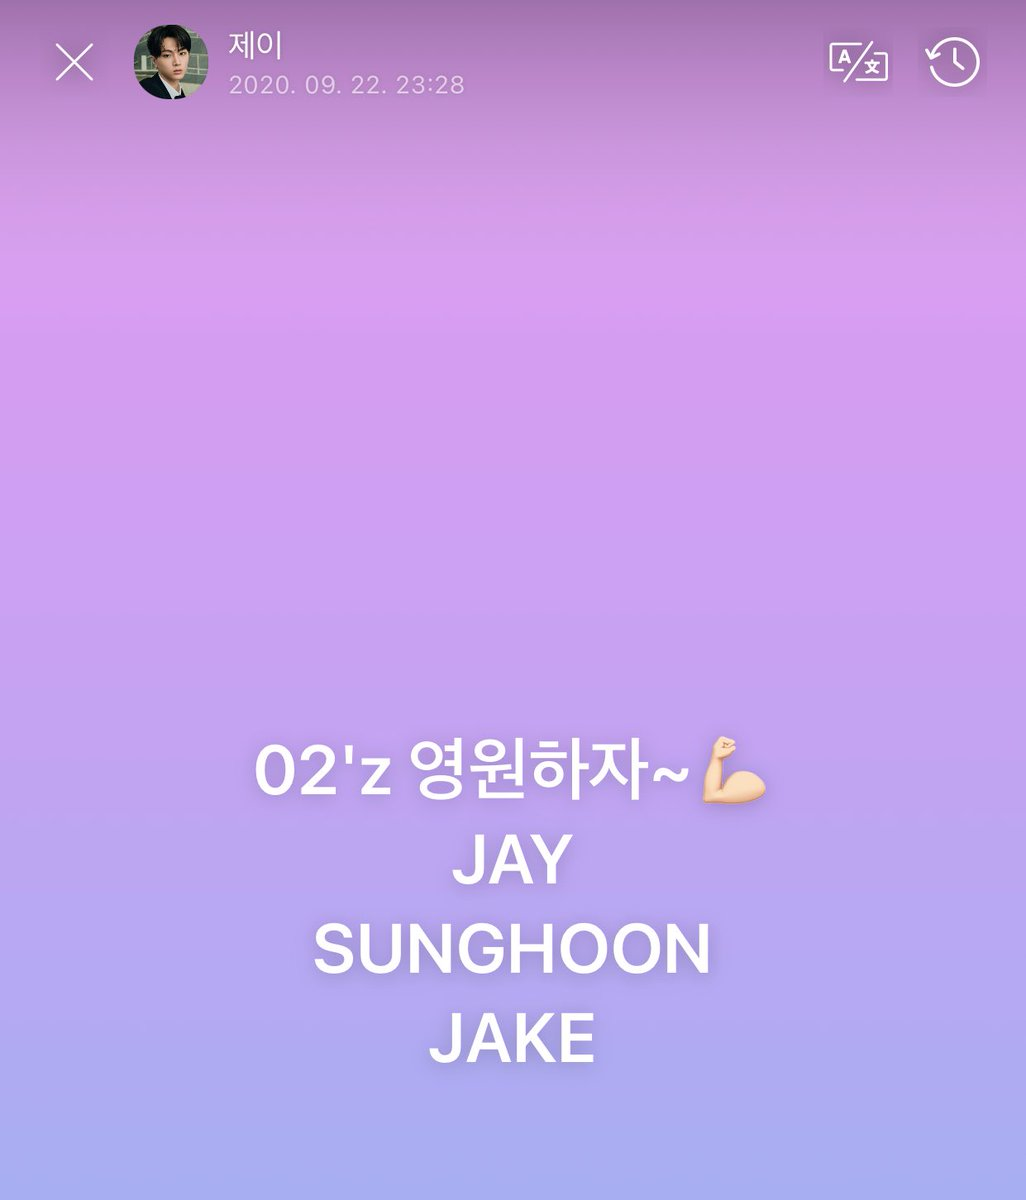 [ #제이's Moment ] 200923  #JAY: 02'z lets be together forever~💪 JAY SUNGHOON JAKE  @ENHYPEN_members #ENHYPEN #엔하이픈 https://t.co/OOcog8nhZm